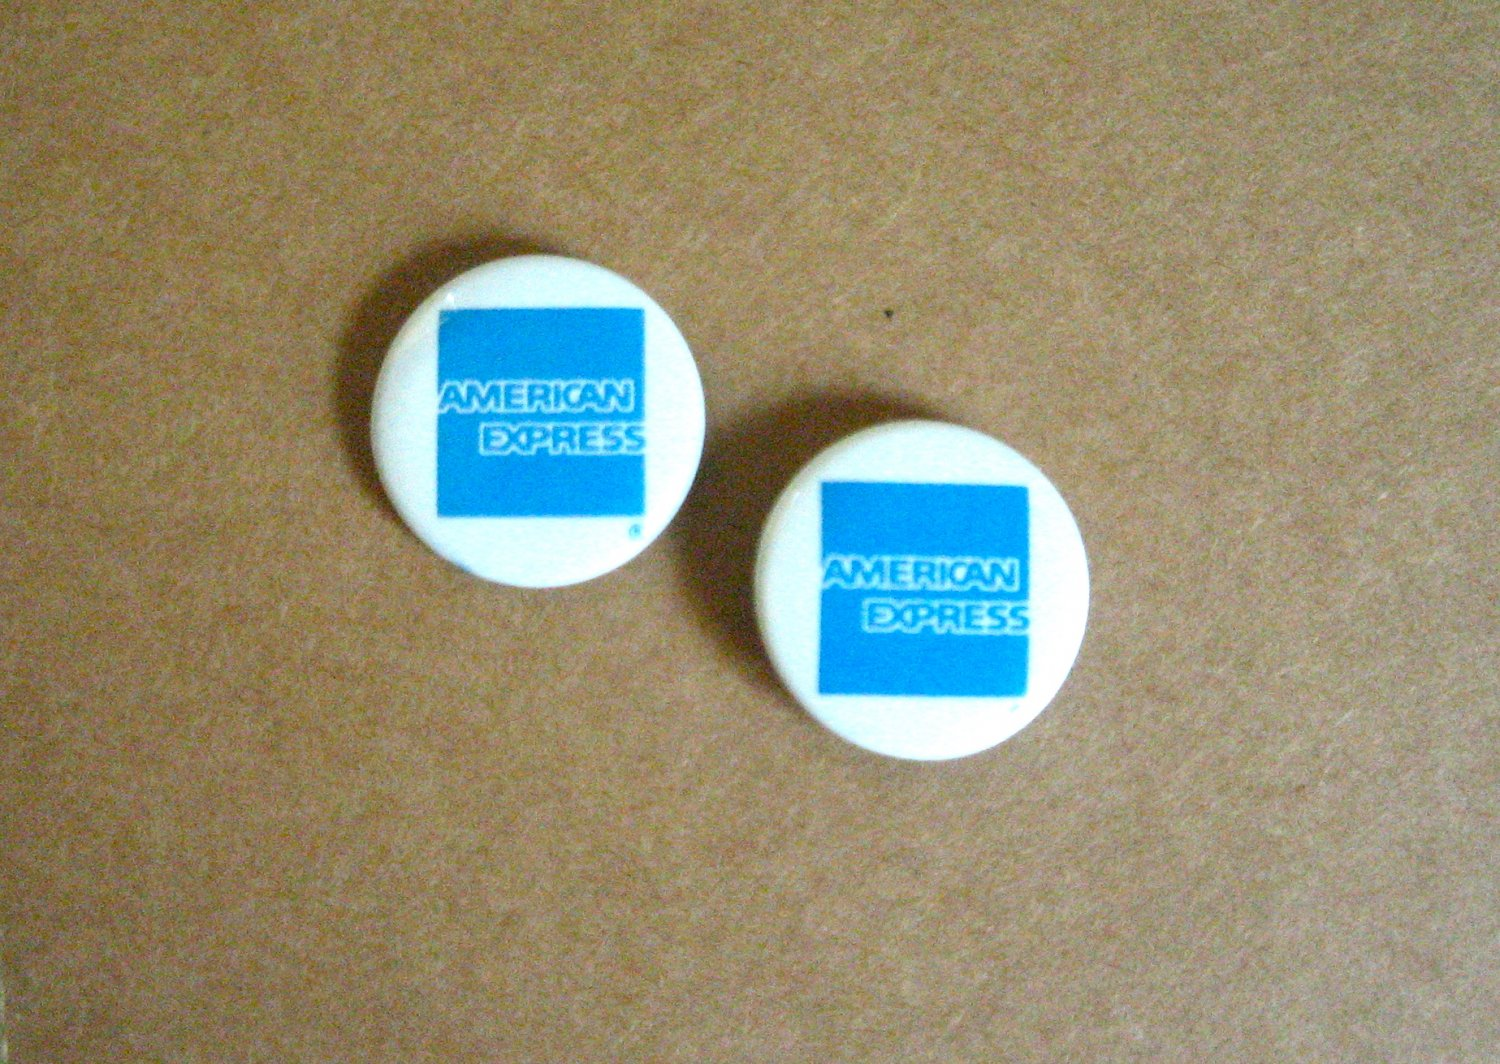 2 Vintage mini American Express Pins Pinbacks Buttons Collectible Advertising